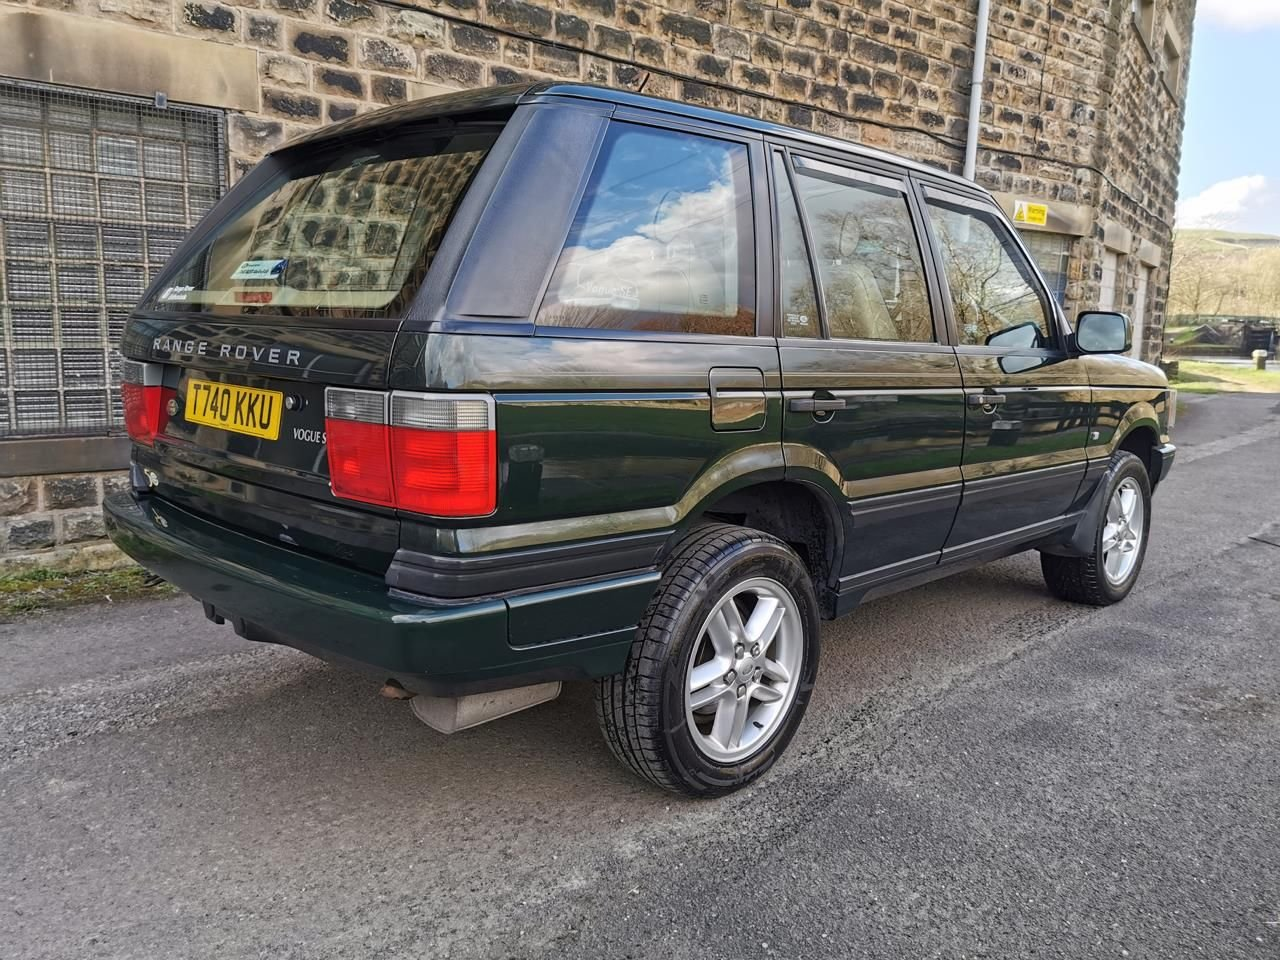 1999 Range Rover Vogue SE 1 of 30 cars, 1 Year Warranty For Sale (picture 1 of 6)